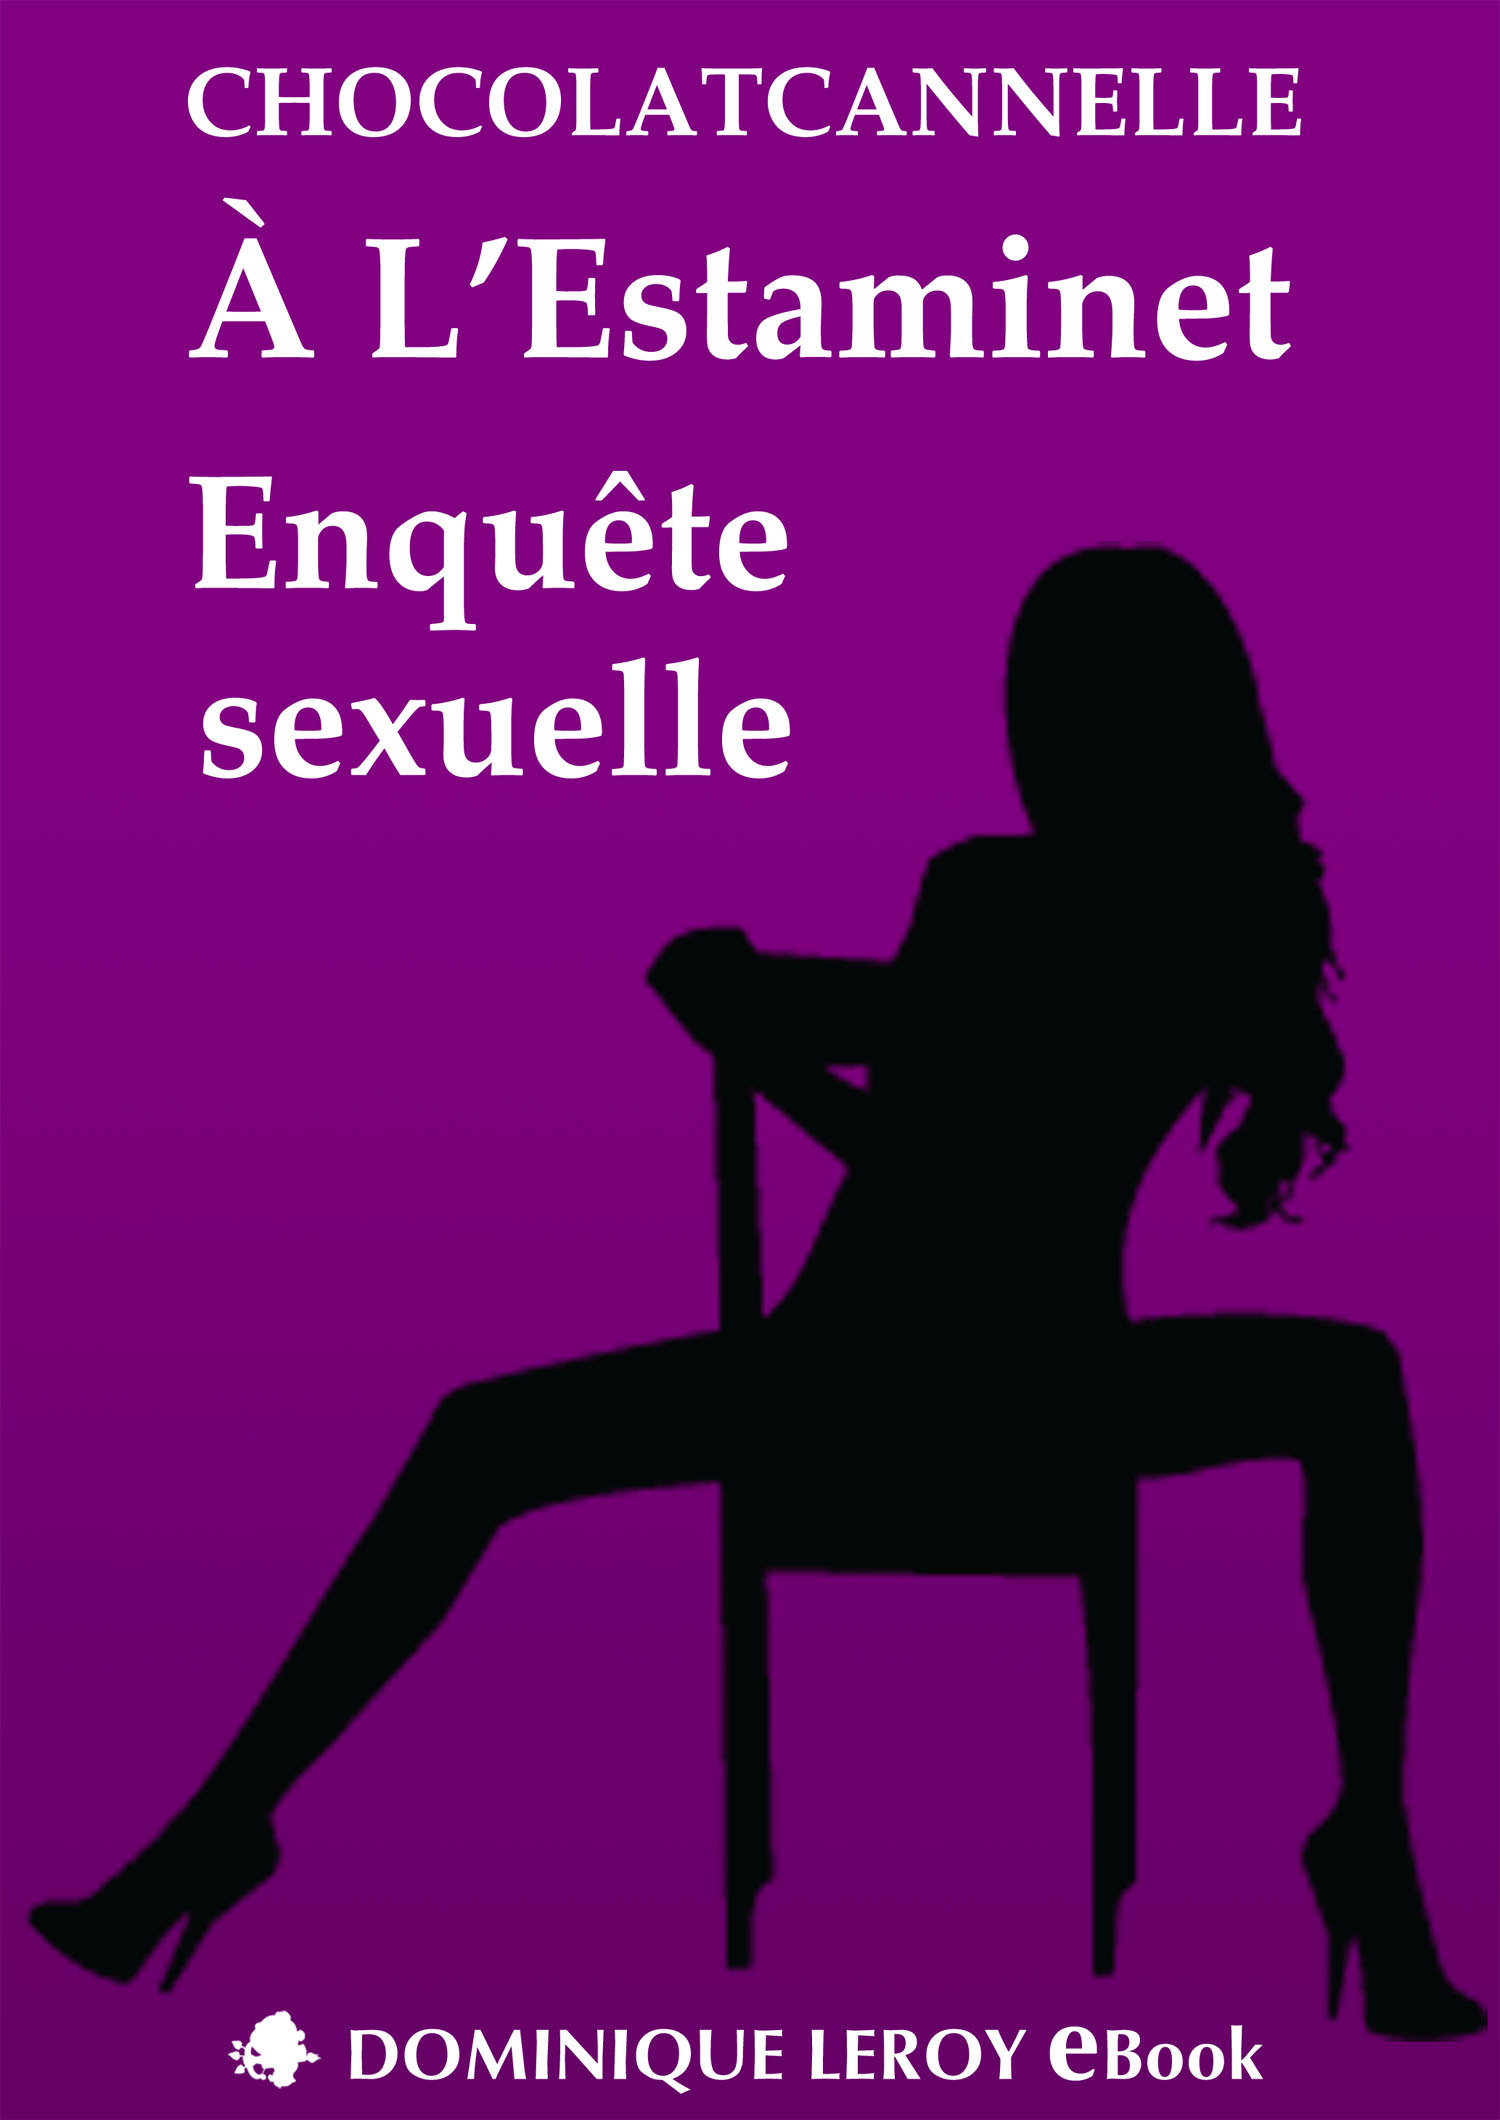 À l'estaminet